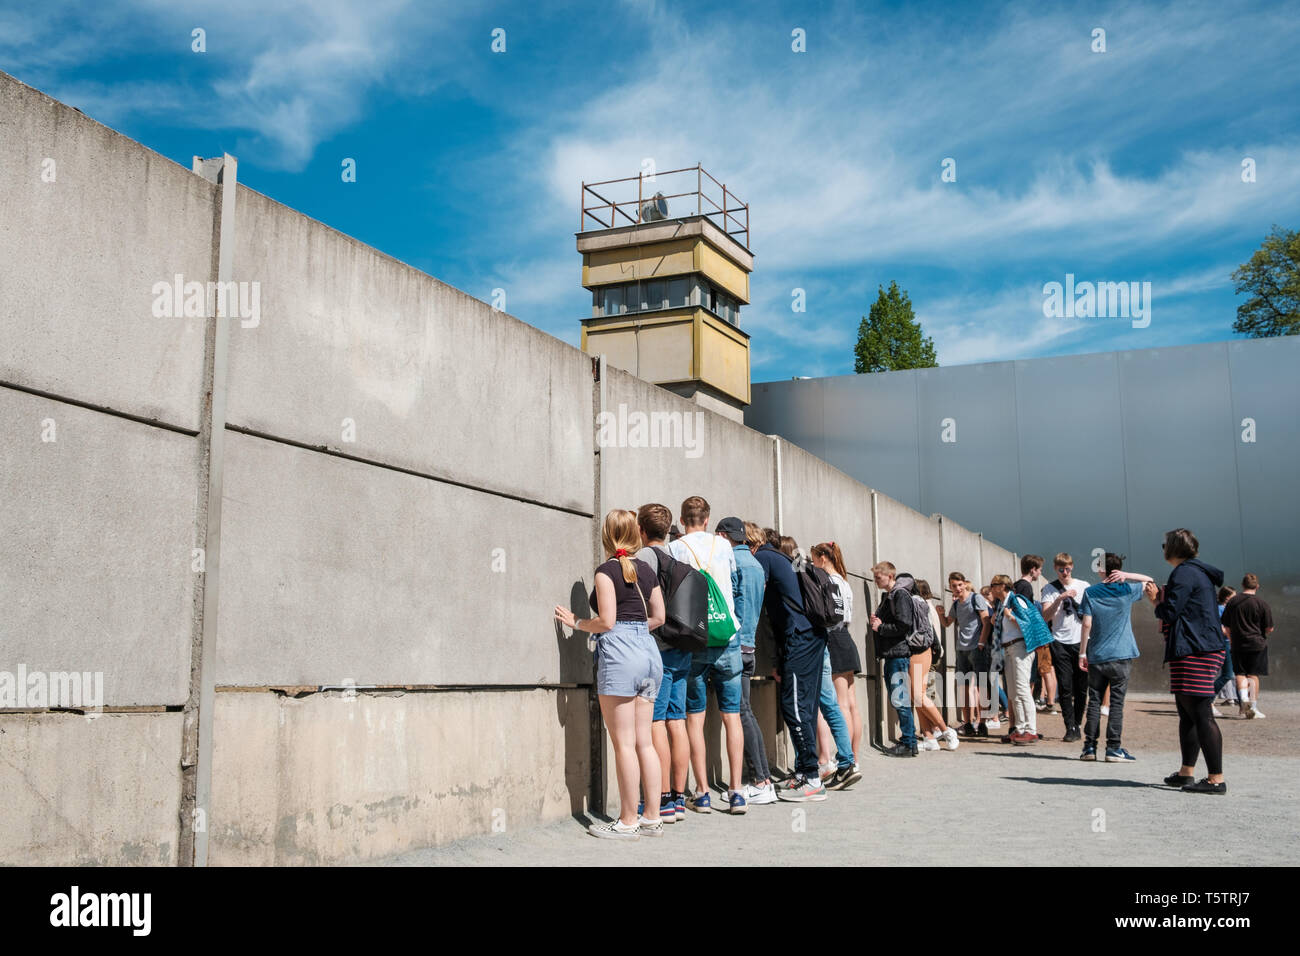 Berlin, Germany - April, 2019: Student group visiting the Berlin Wall Memorial near Nordbahnhof - Stock Image